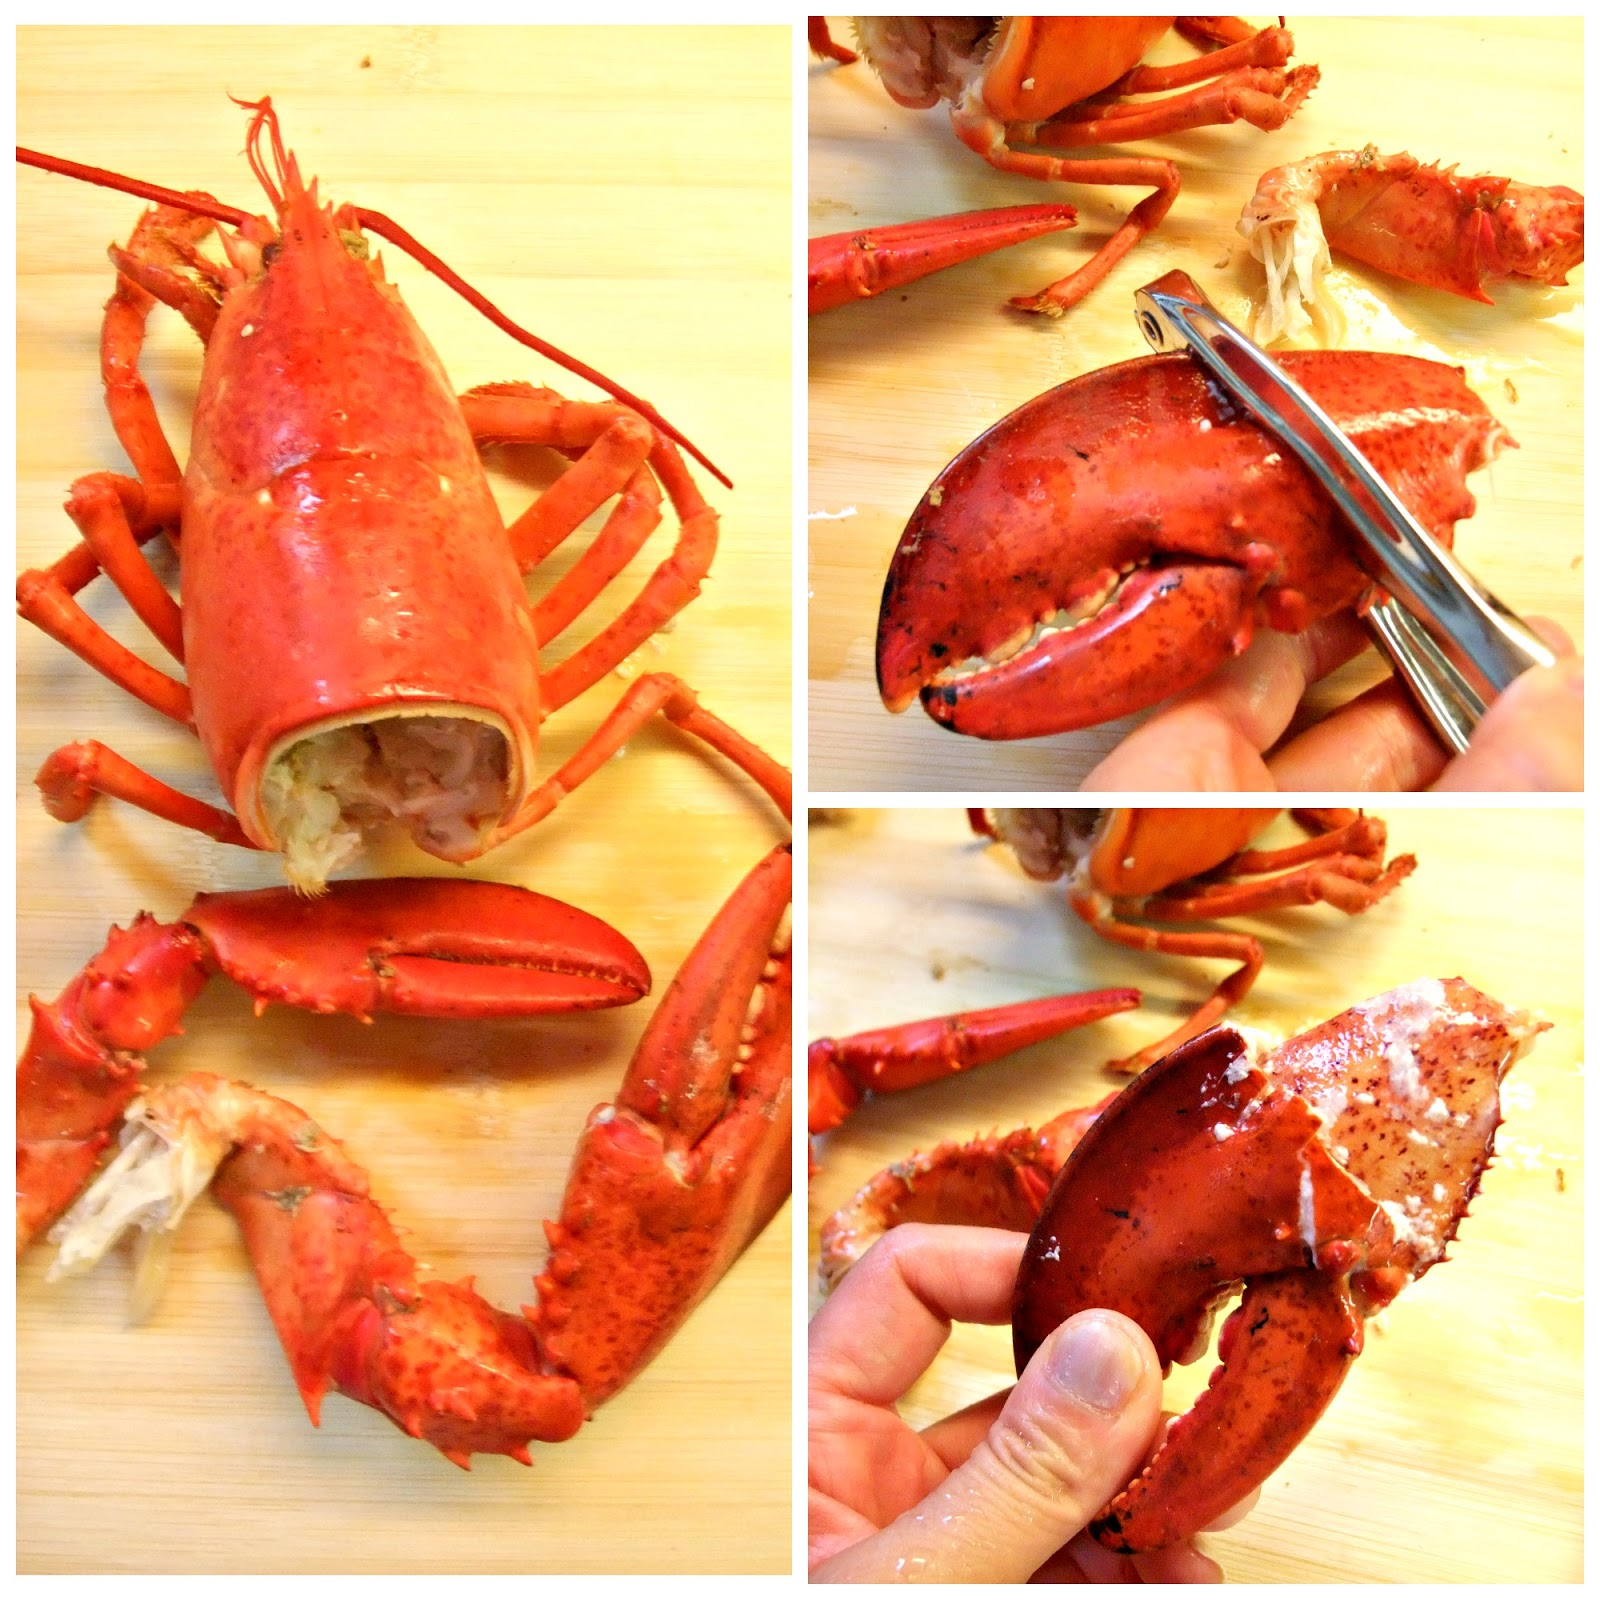 Susan's Savour-It!: The Classic Lobster Roll...